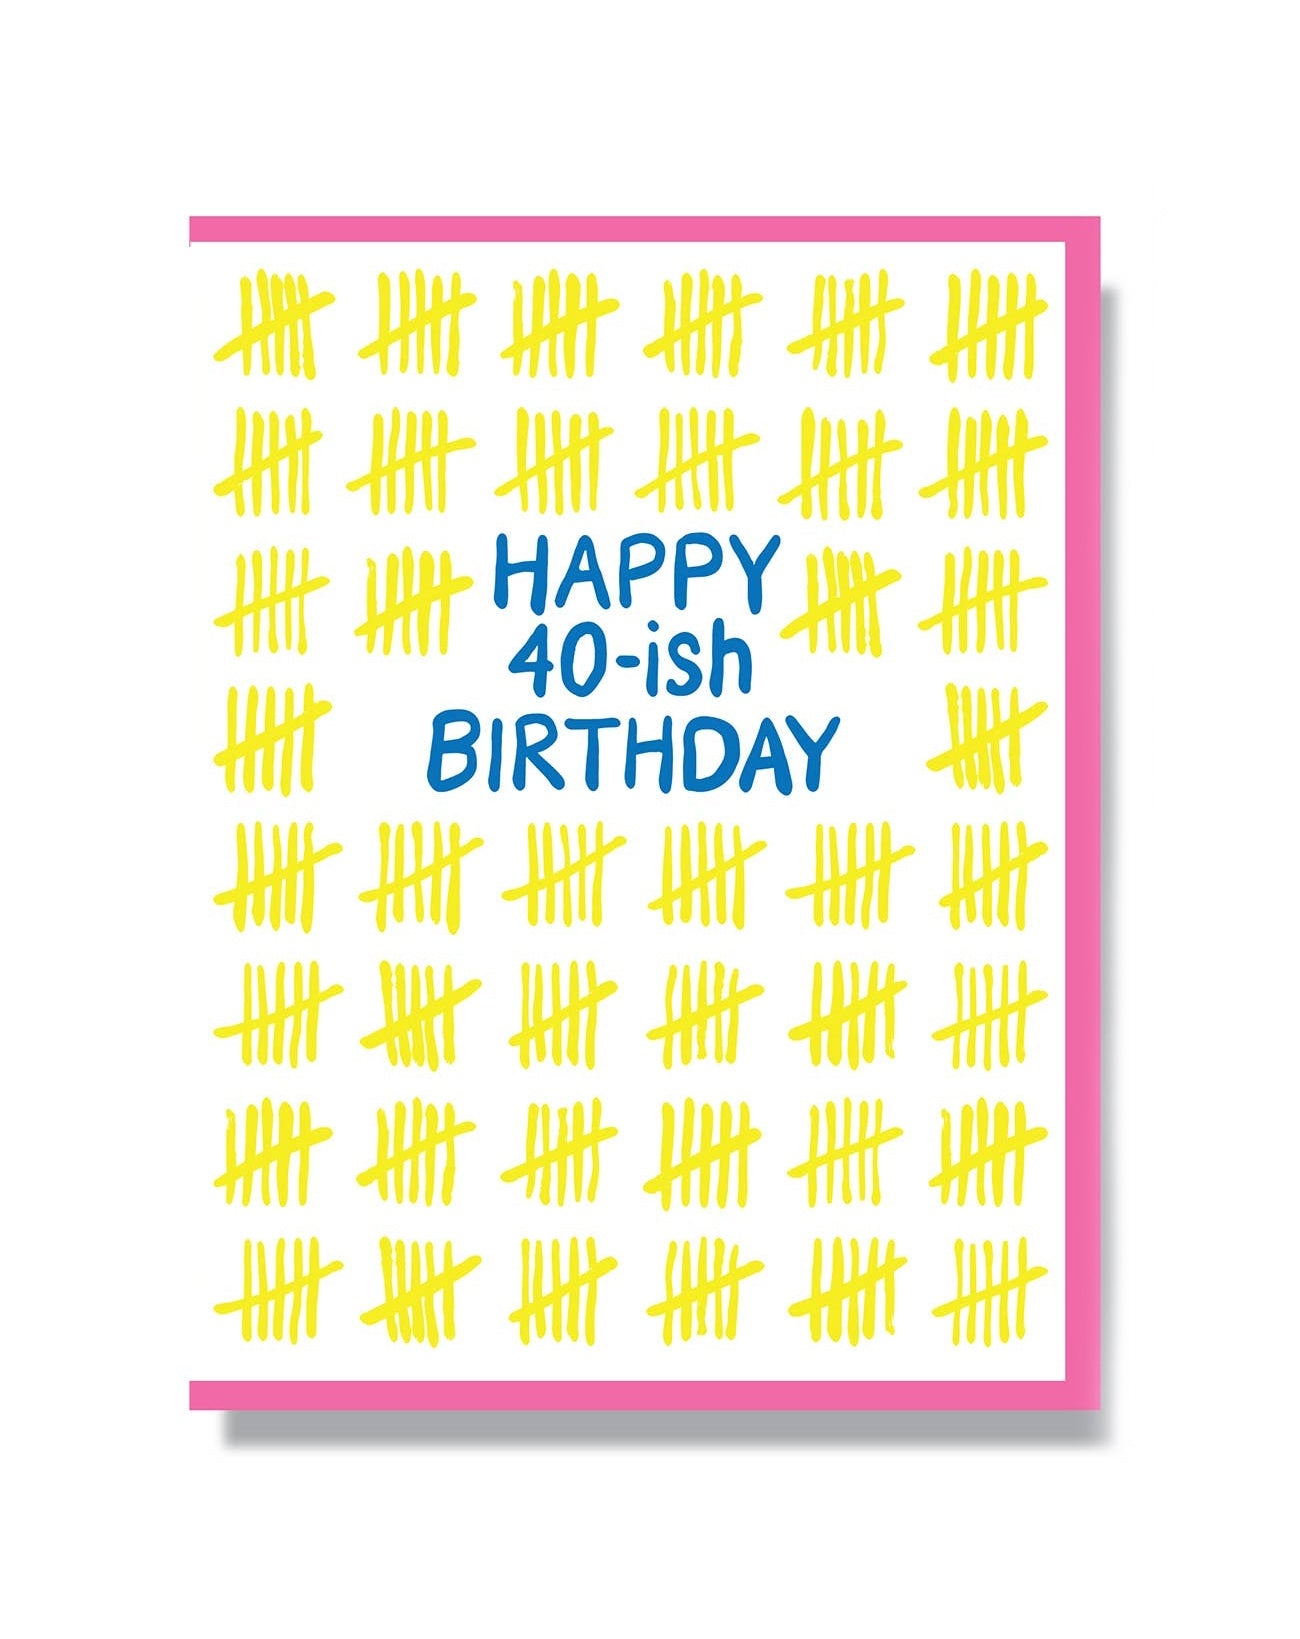 Happy 40-ish Birthday Card